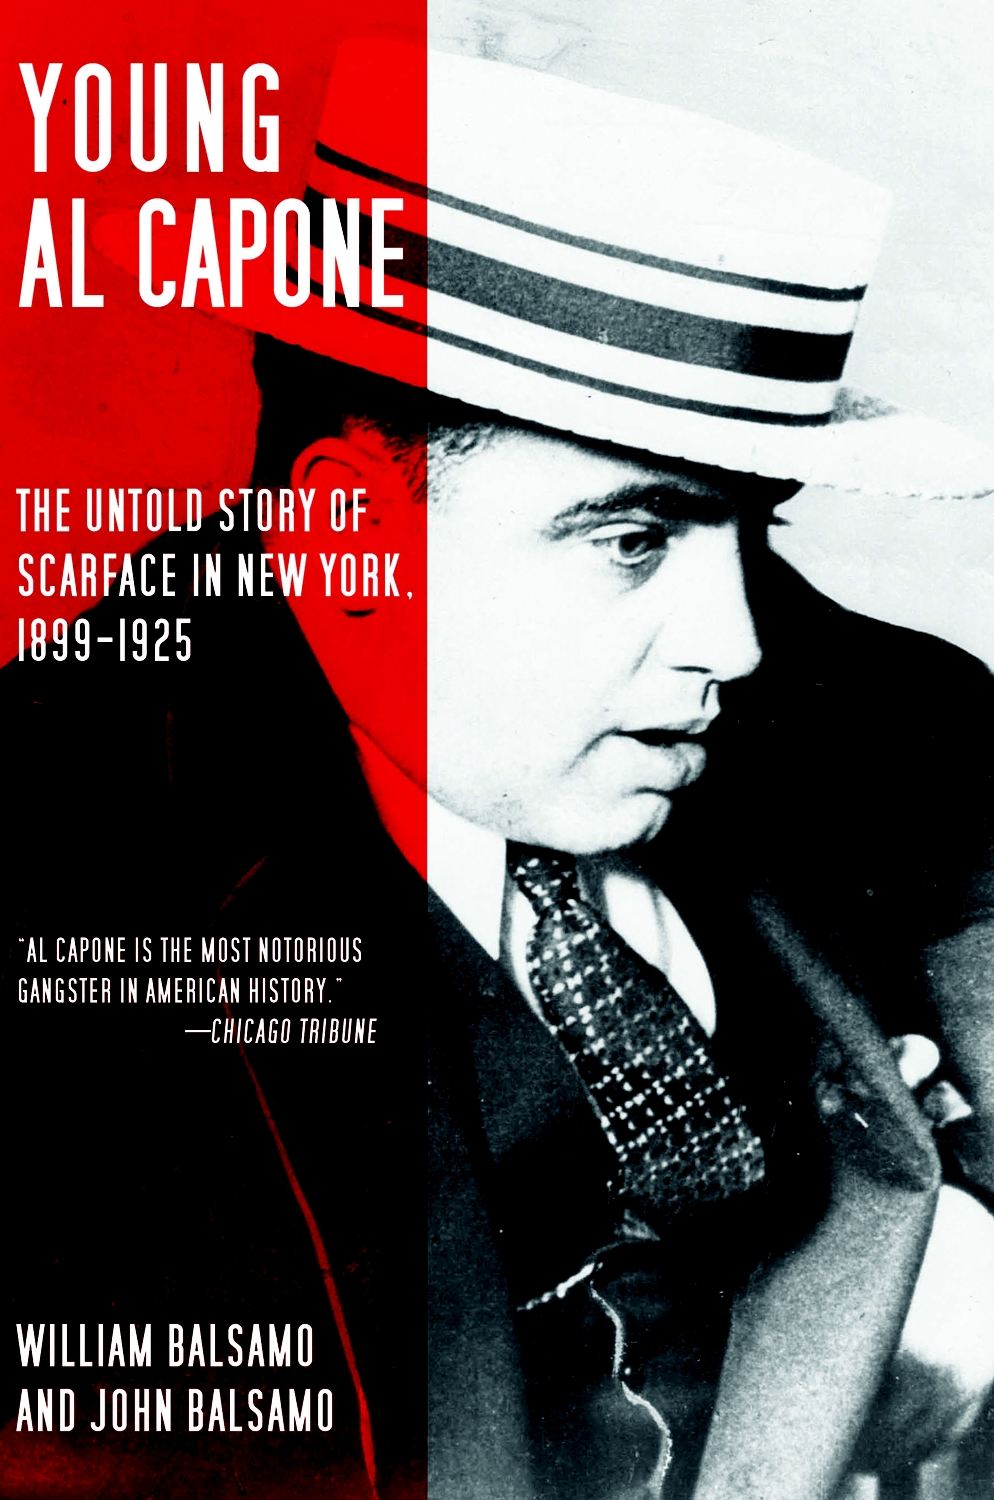 Young Al Capone: The Untold Story of Scarface in New York, 1899-1925 By: William Balsamo, John Balsamo